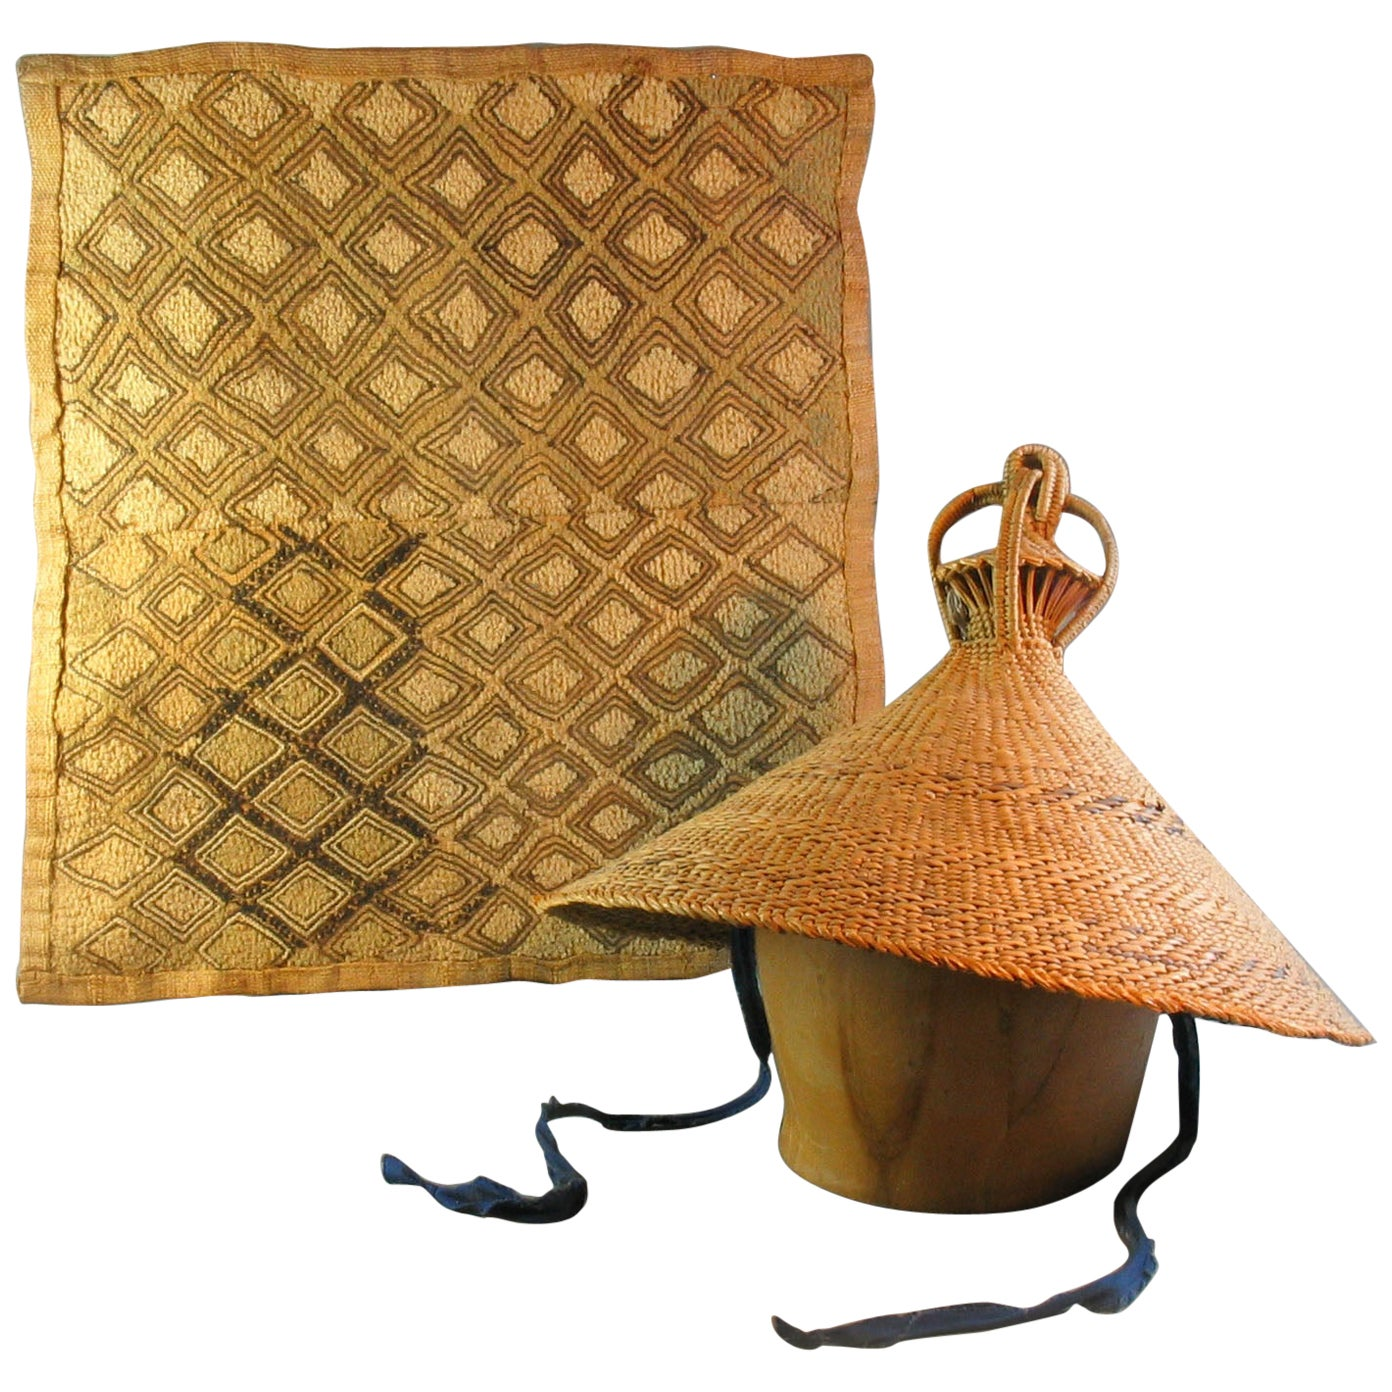 Kuba Ceremonial Raffia Textile Panel with a Hat from Lesotho Tribal Art Drc